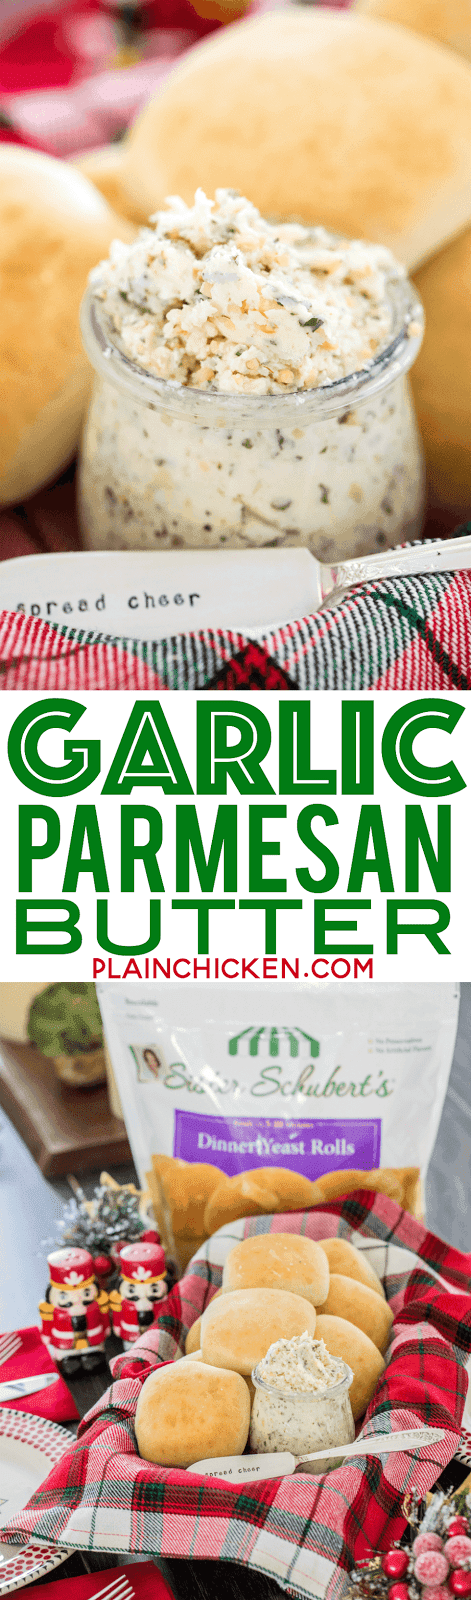 Garlic Parmesan Butter - only 6 ingredients. Butter, garlic, parsley, Italian seasoning, pepper and parmesan cheese. Perfect accompaniment to Sister Schubert's Dinner Yeast Rolls. Whip up a batch of butter while the rolls bake! Also makes a great homemade gift! #butter #garlic #garlicbutter #sisterschuberts